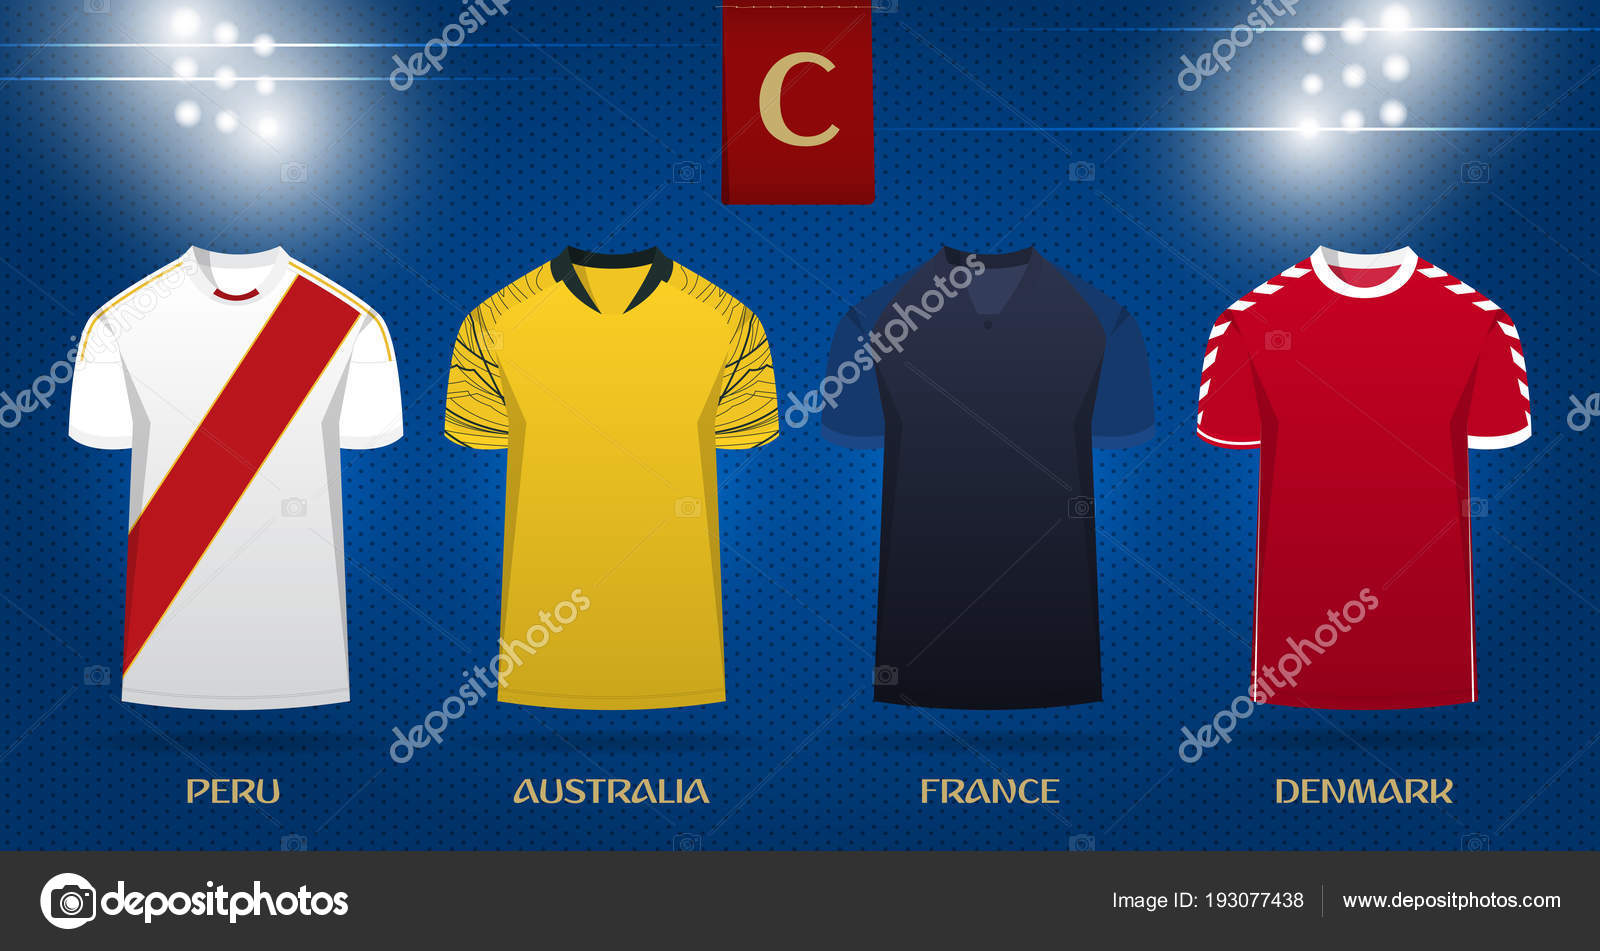 Soccer Kit Or Football Jersey Template Design For National Football